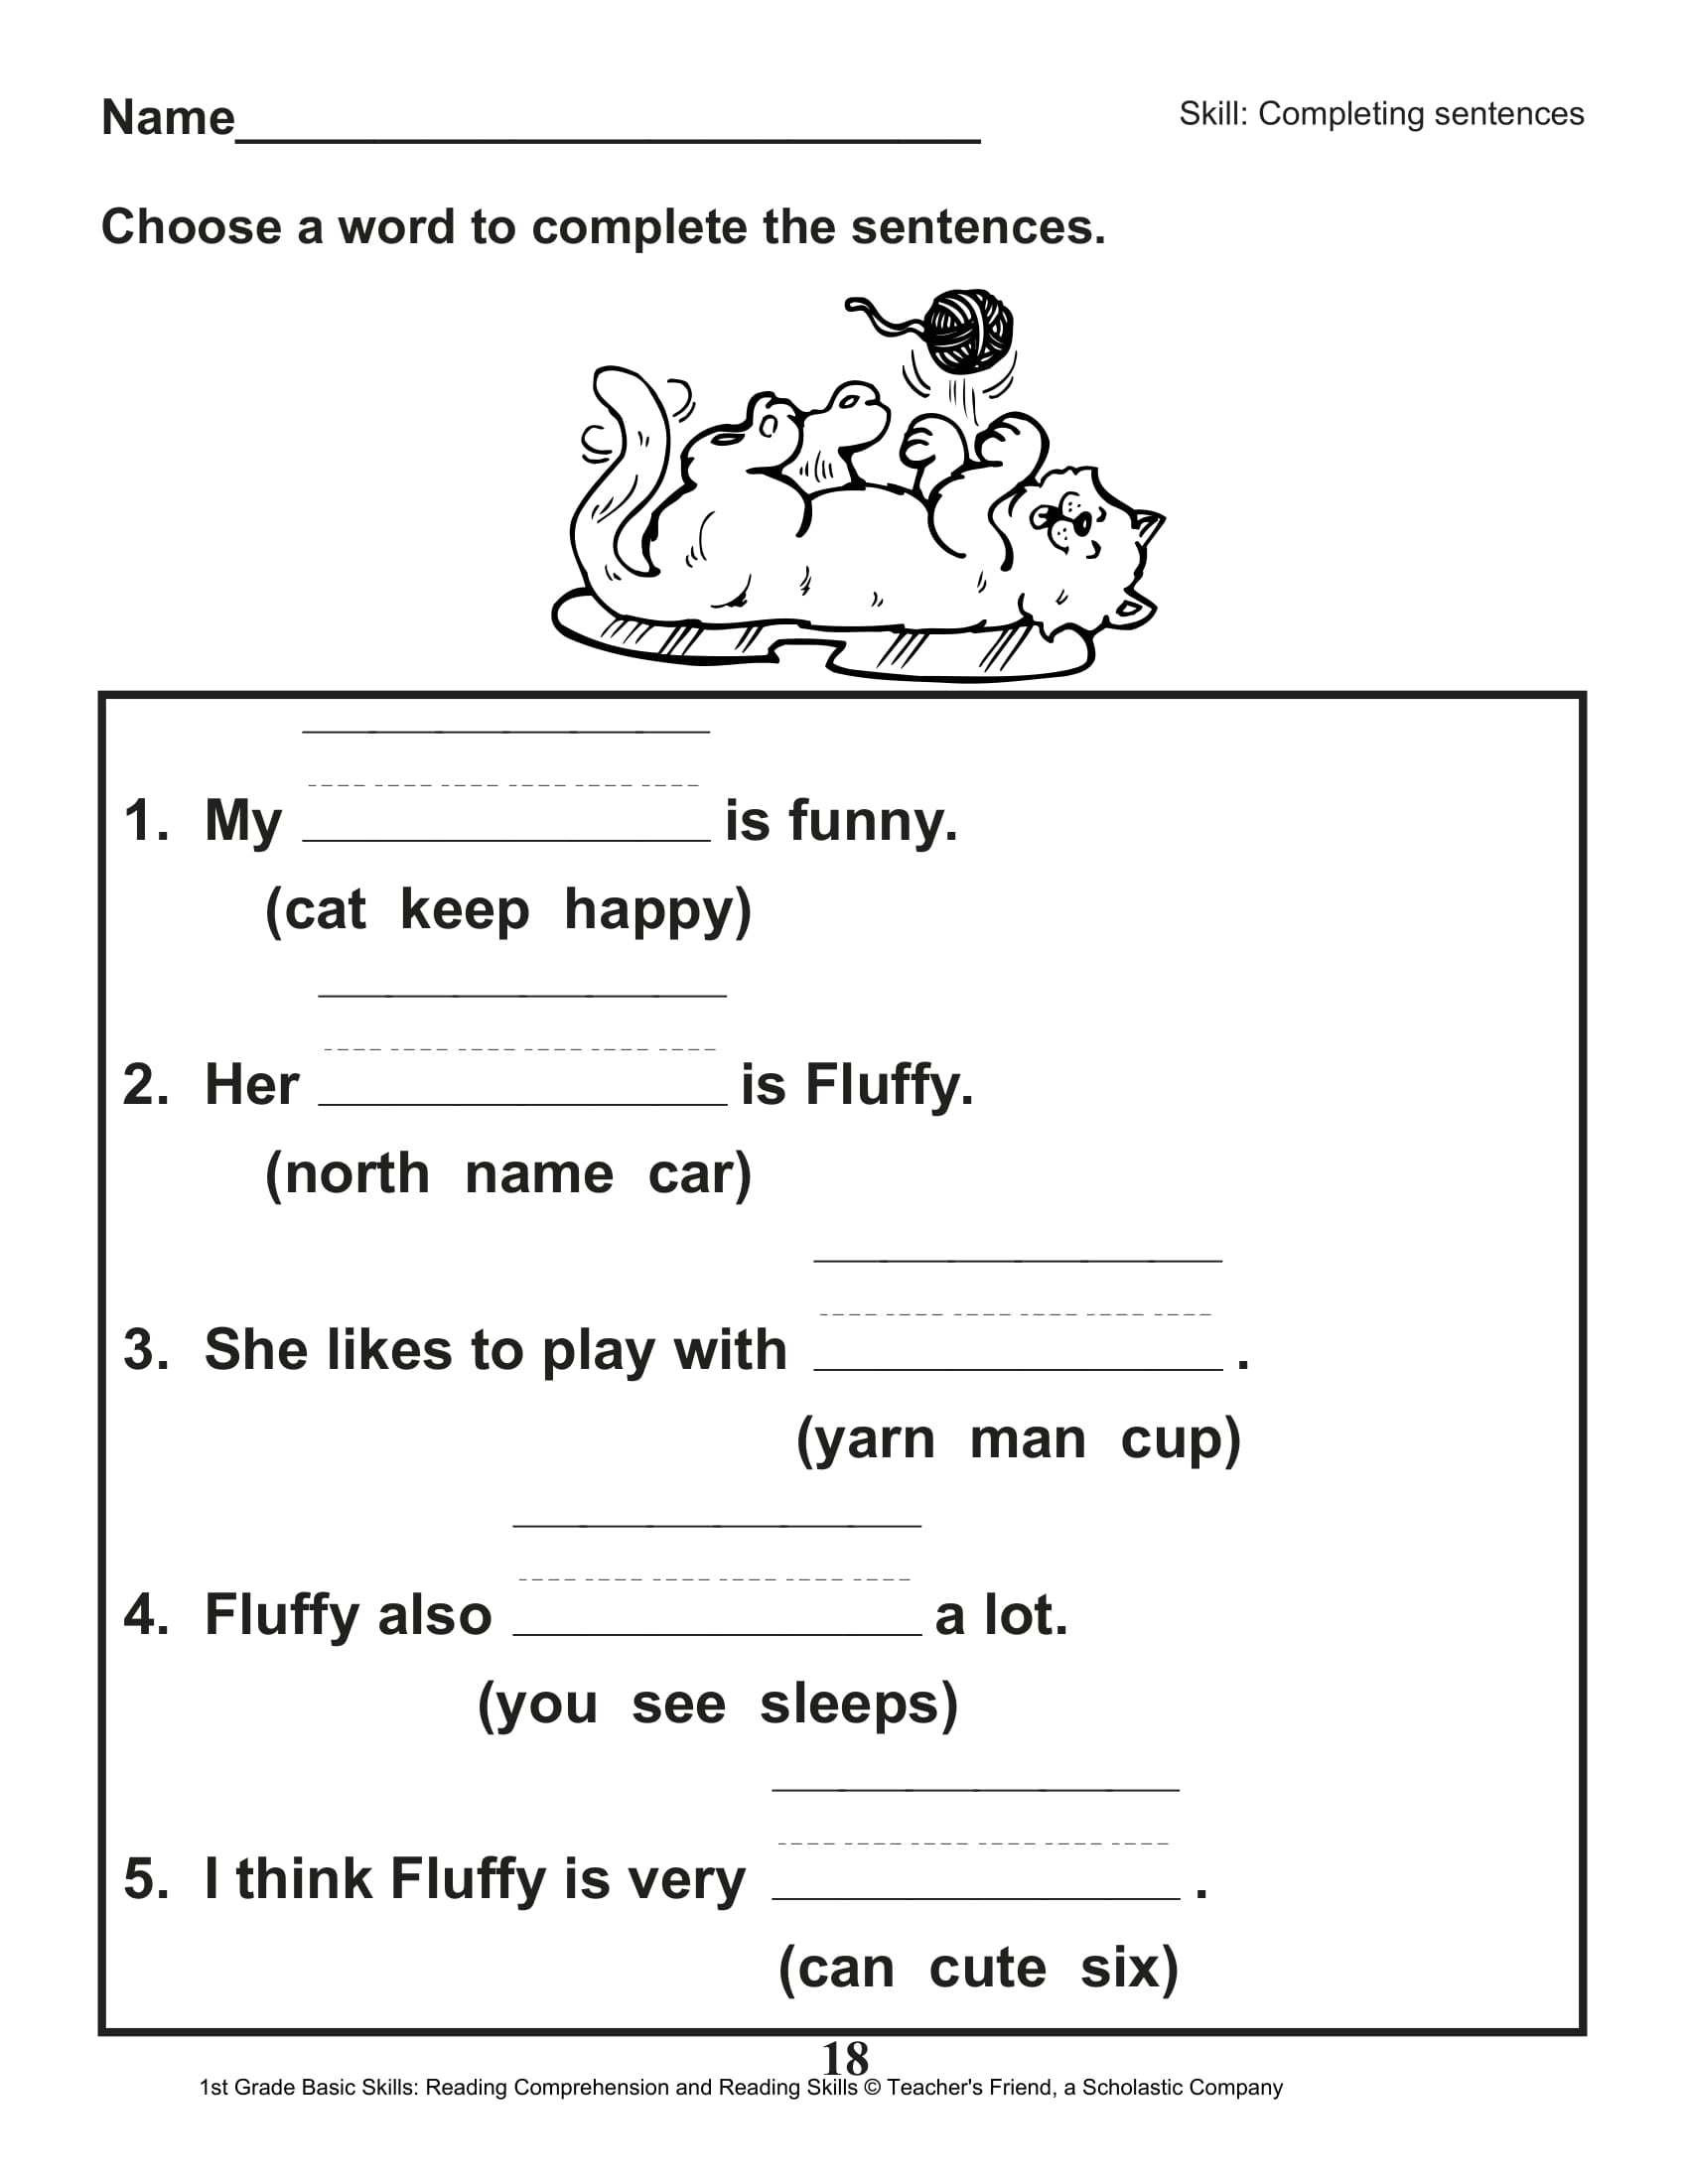 1st Grade Reading Worksheets Printable Math Worksheet 64 1st Grade Reading Skills Image Ideas 2nd